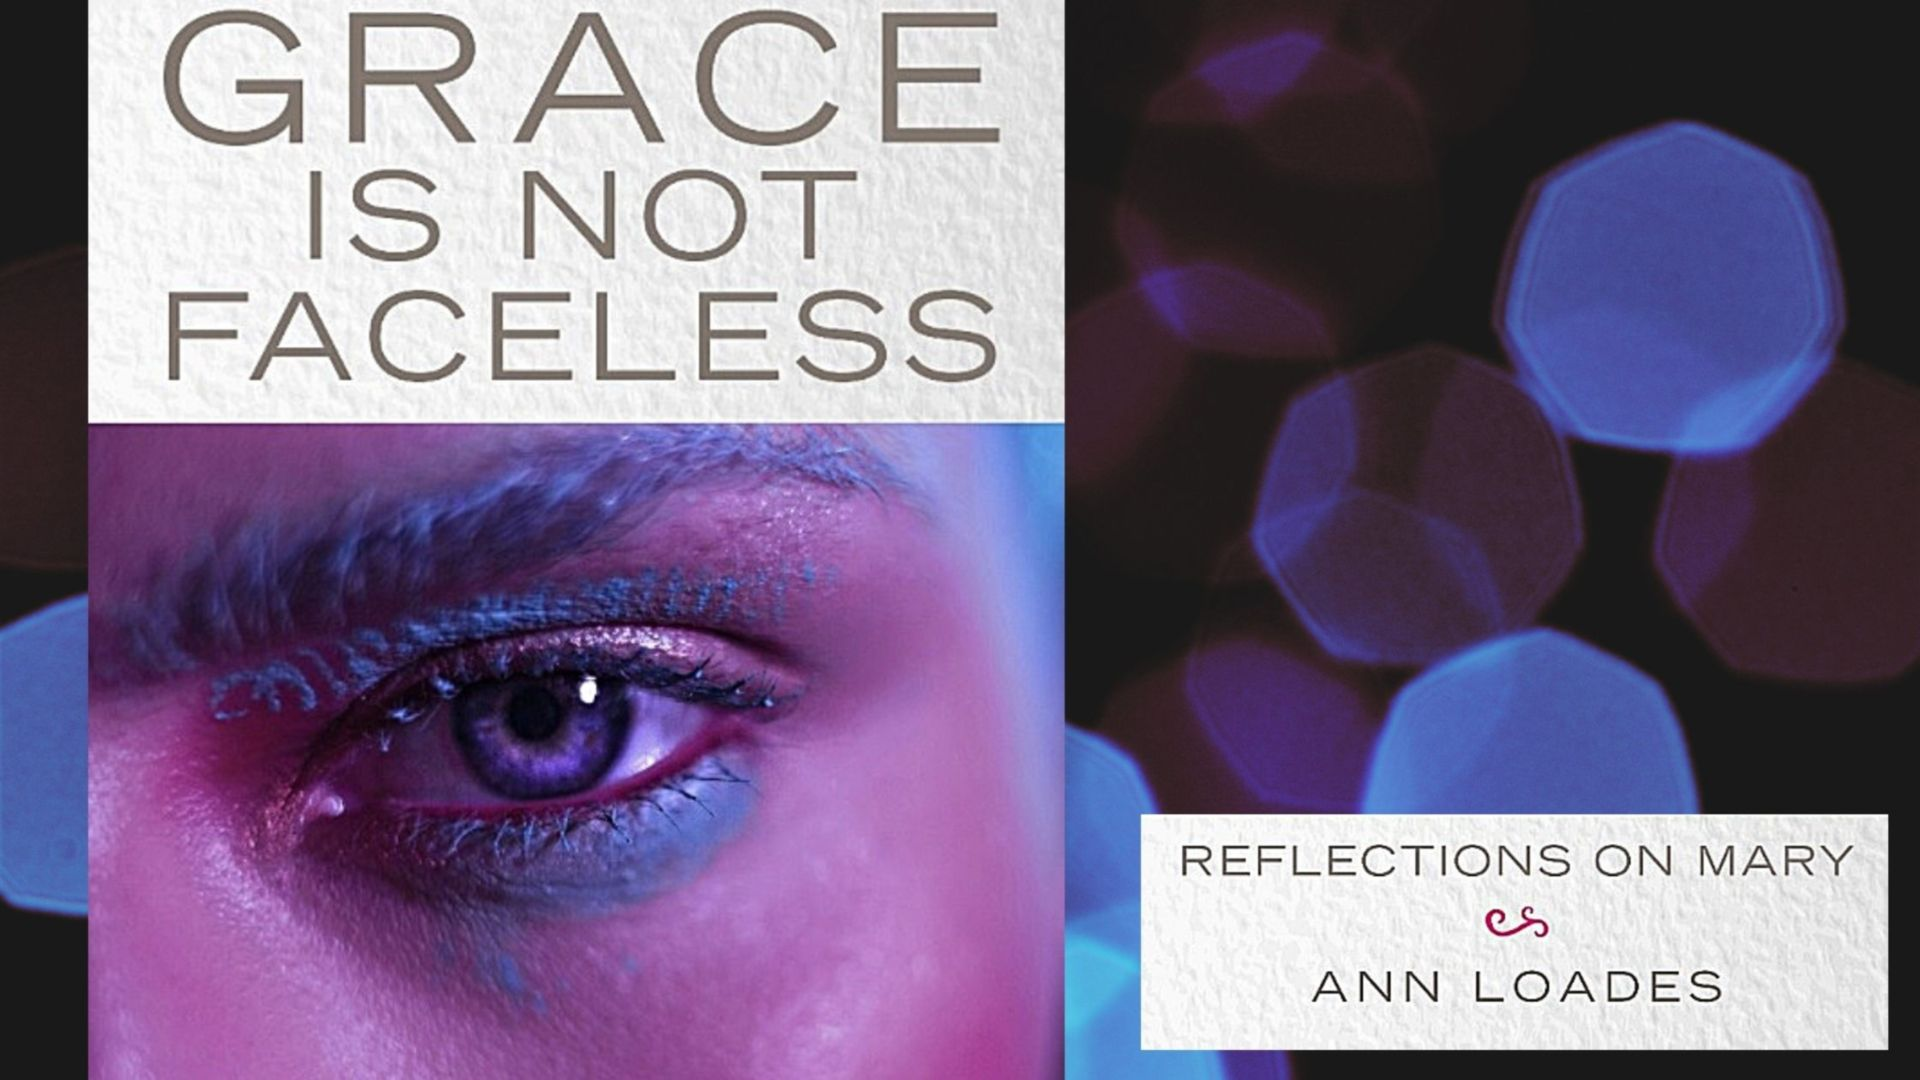 A Together Magazine Big Review on 'Grace is Not Faceless'